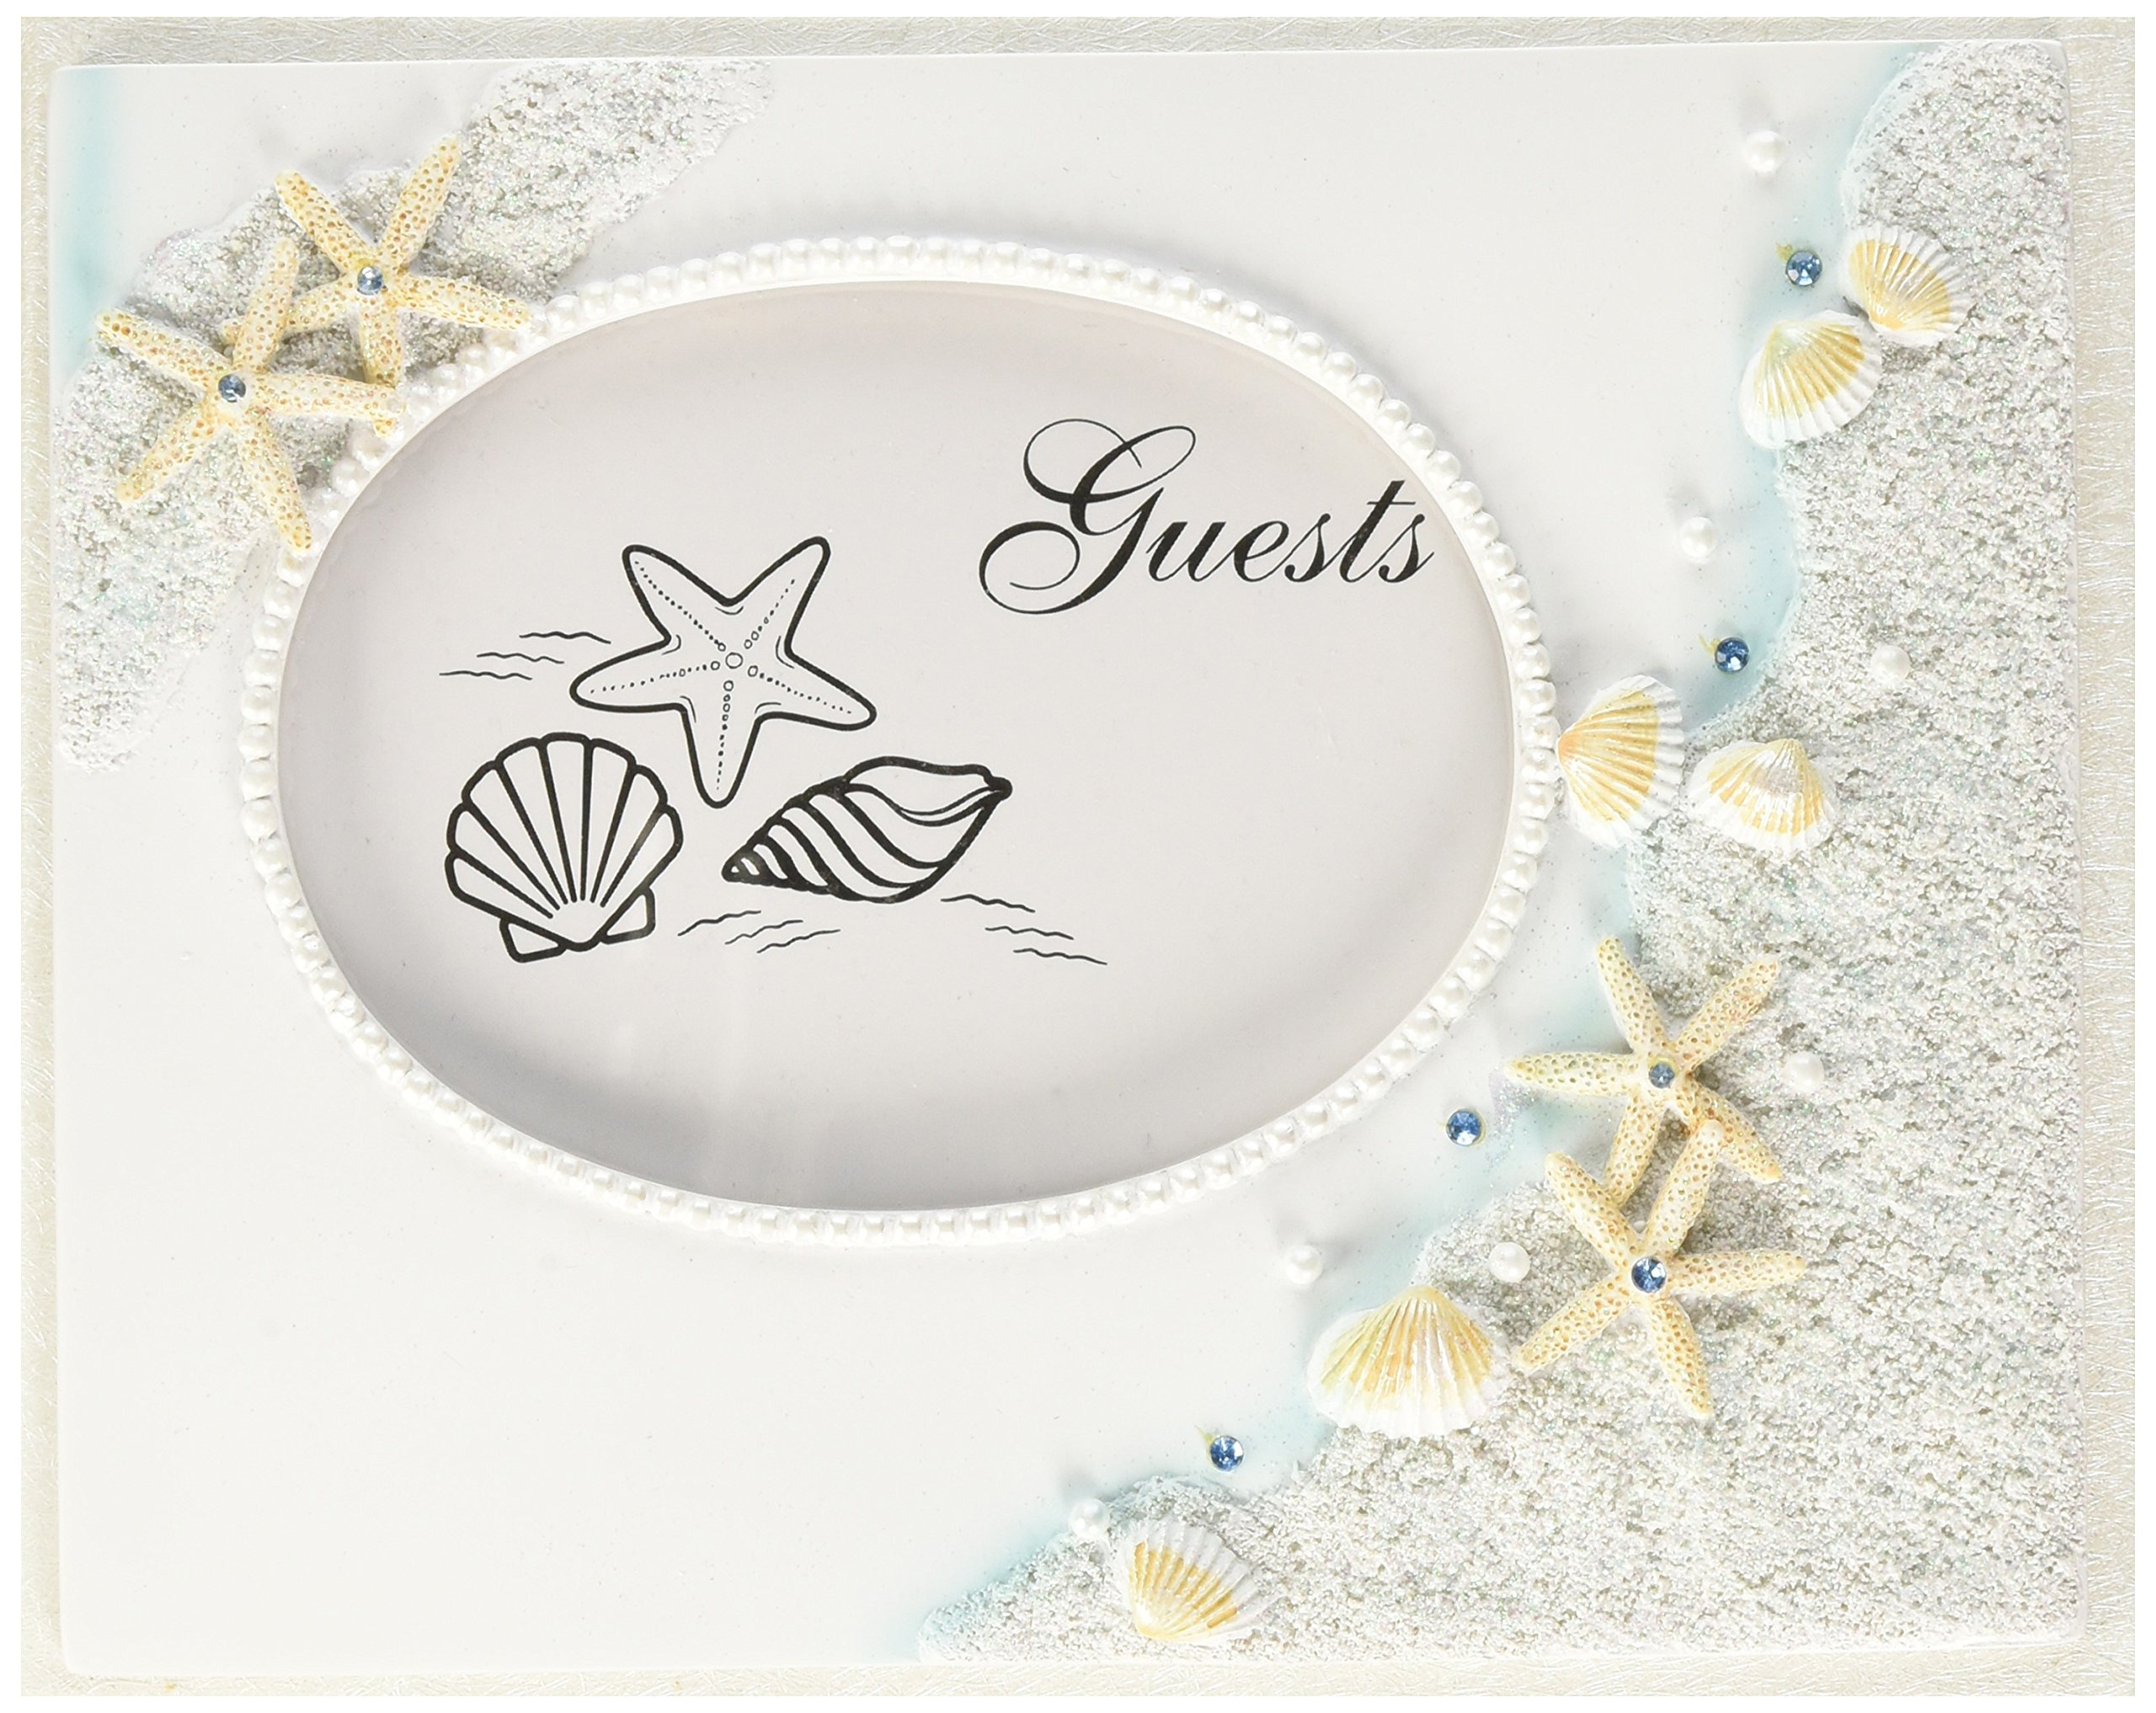 Fashioncraft Finishing Touches Collection Beach Themed Wedding Guest Book, 9.5'' Wide X 7.5'' X 2'', White, Blue, Coral